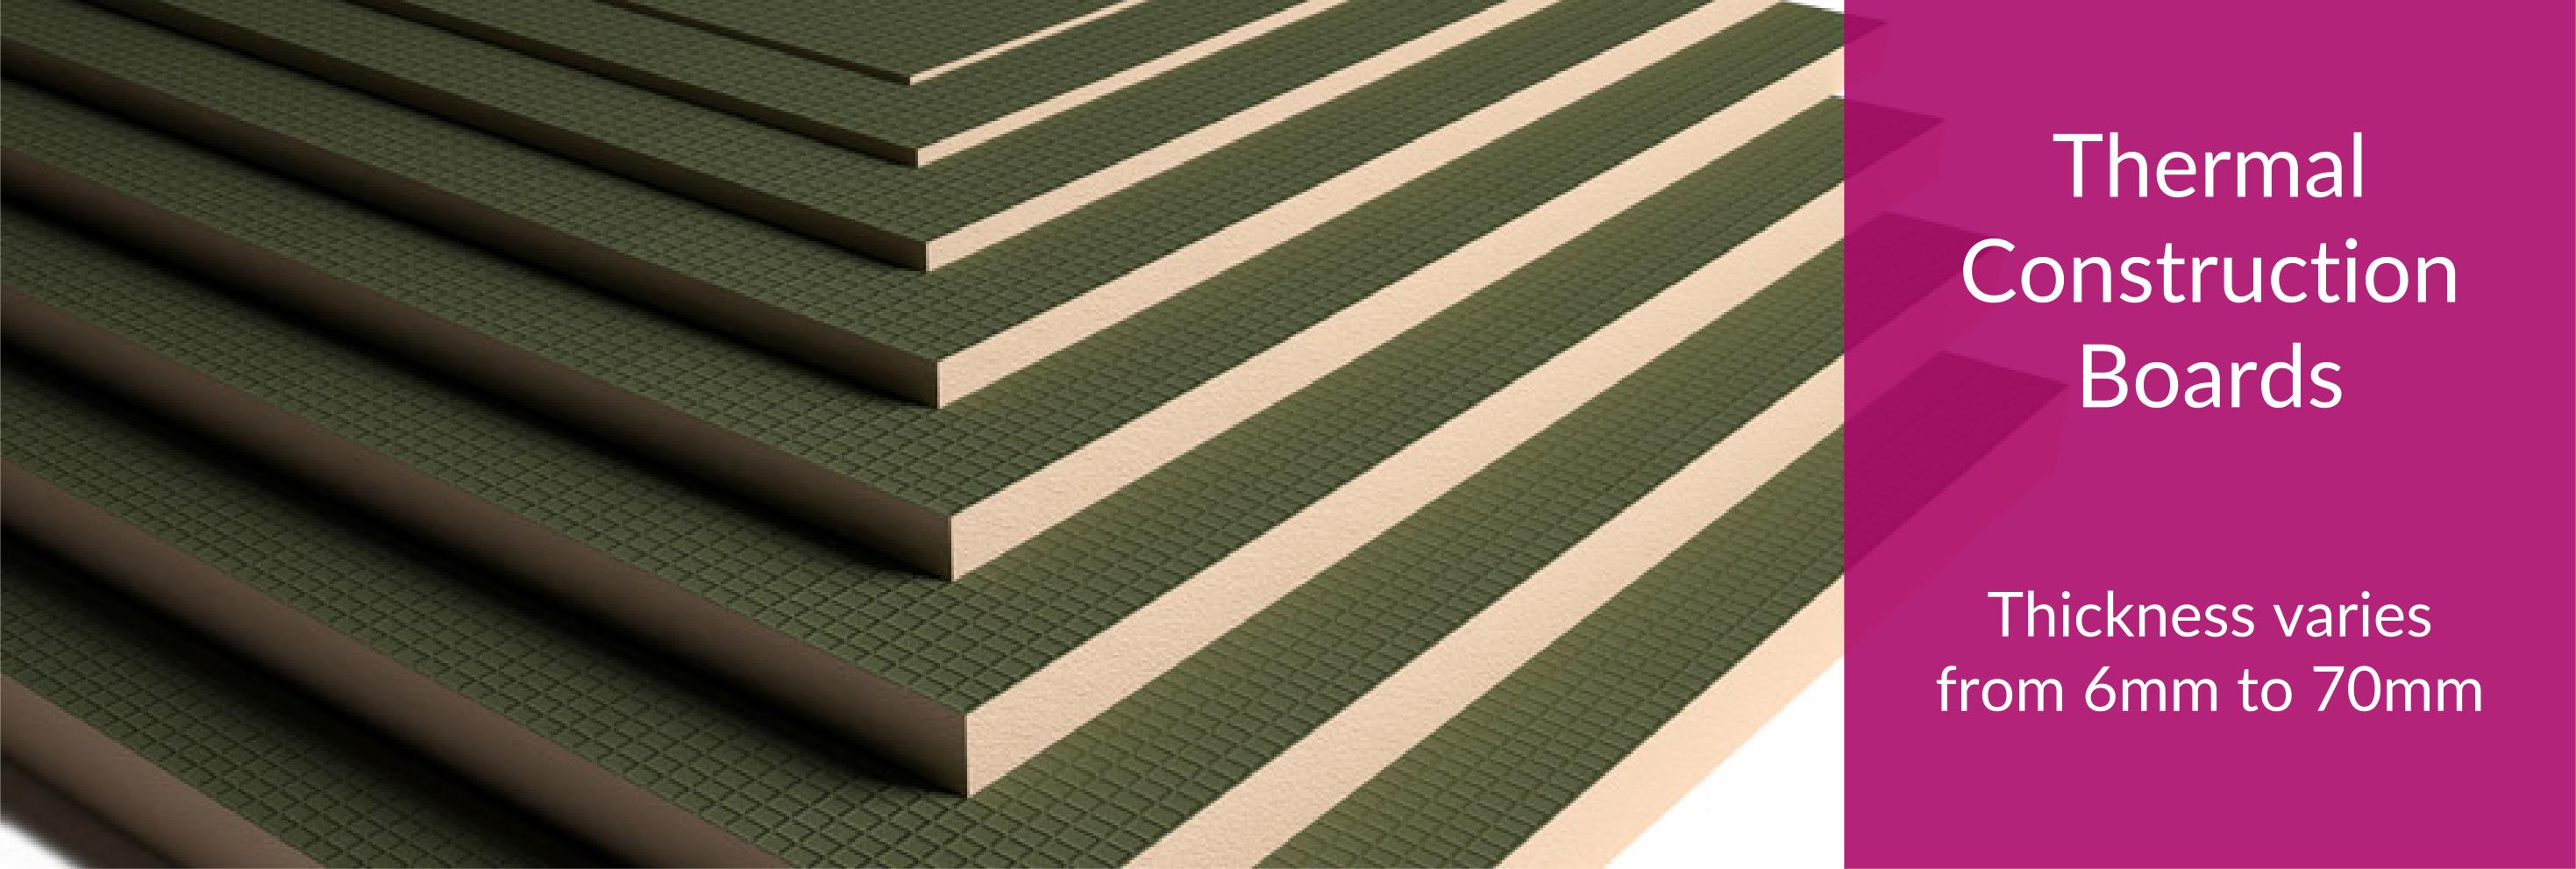 Thermal Construction Boards